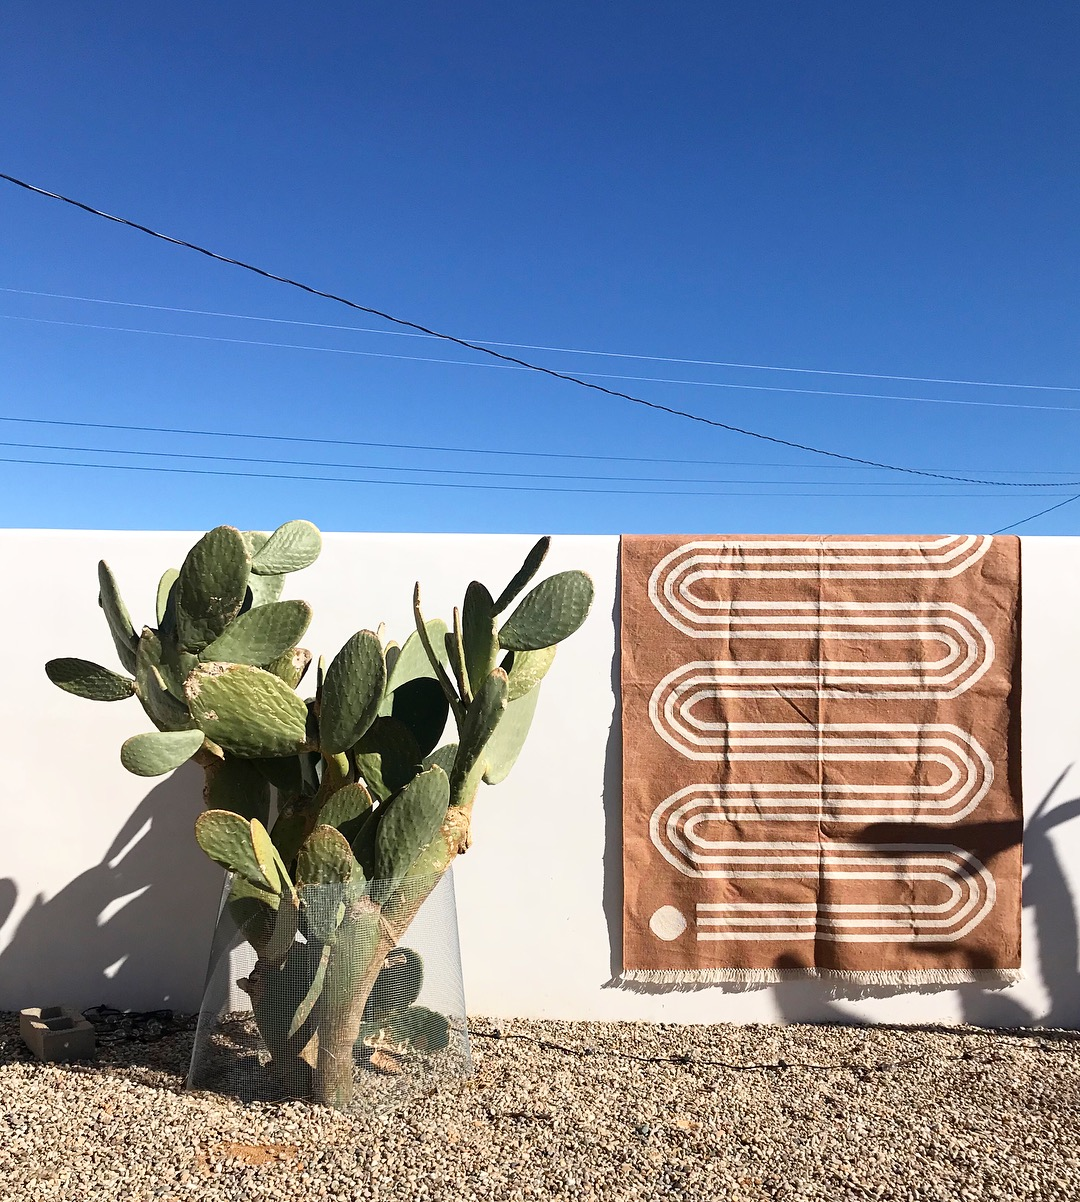 Hardware cloth to keep the antelope squirrels out of my prickly pear. A rug my sister Hopie and I designed this winter for  Block Shop .